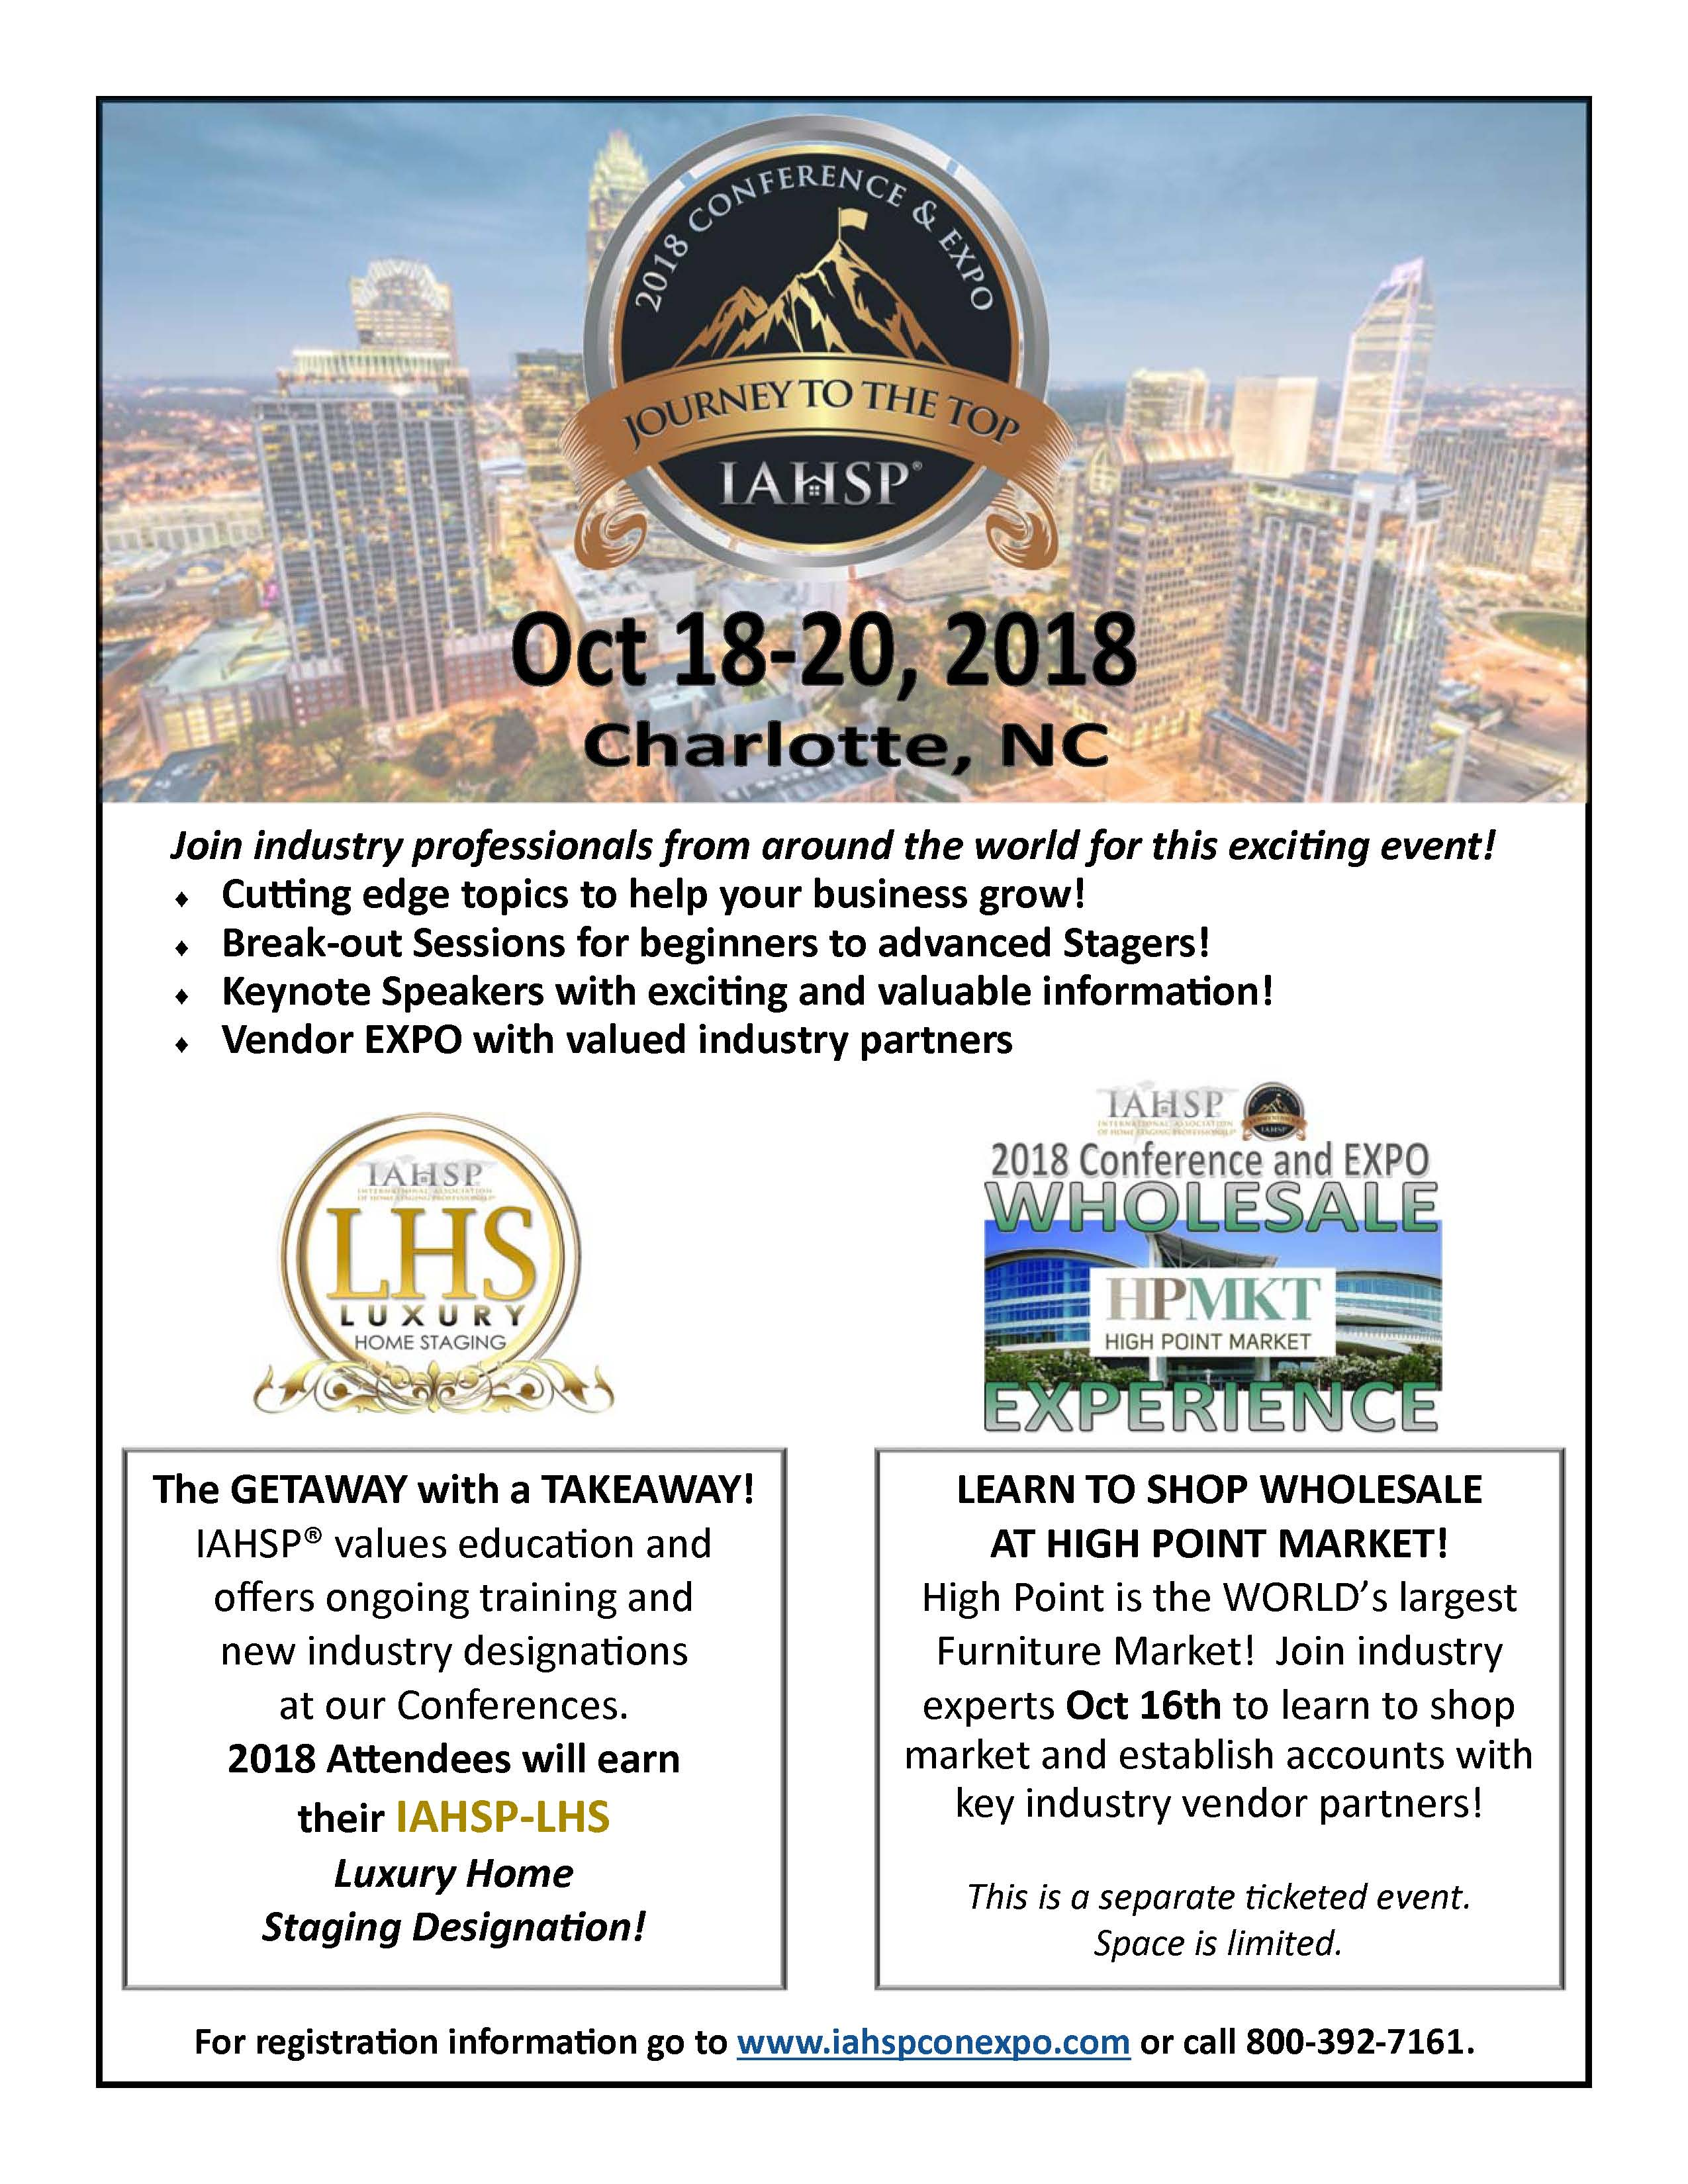 Iahsp 2018 Conference Your Getaway With A Takeaway Earn Your